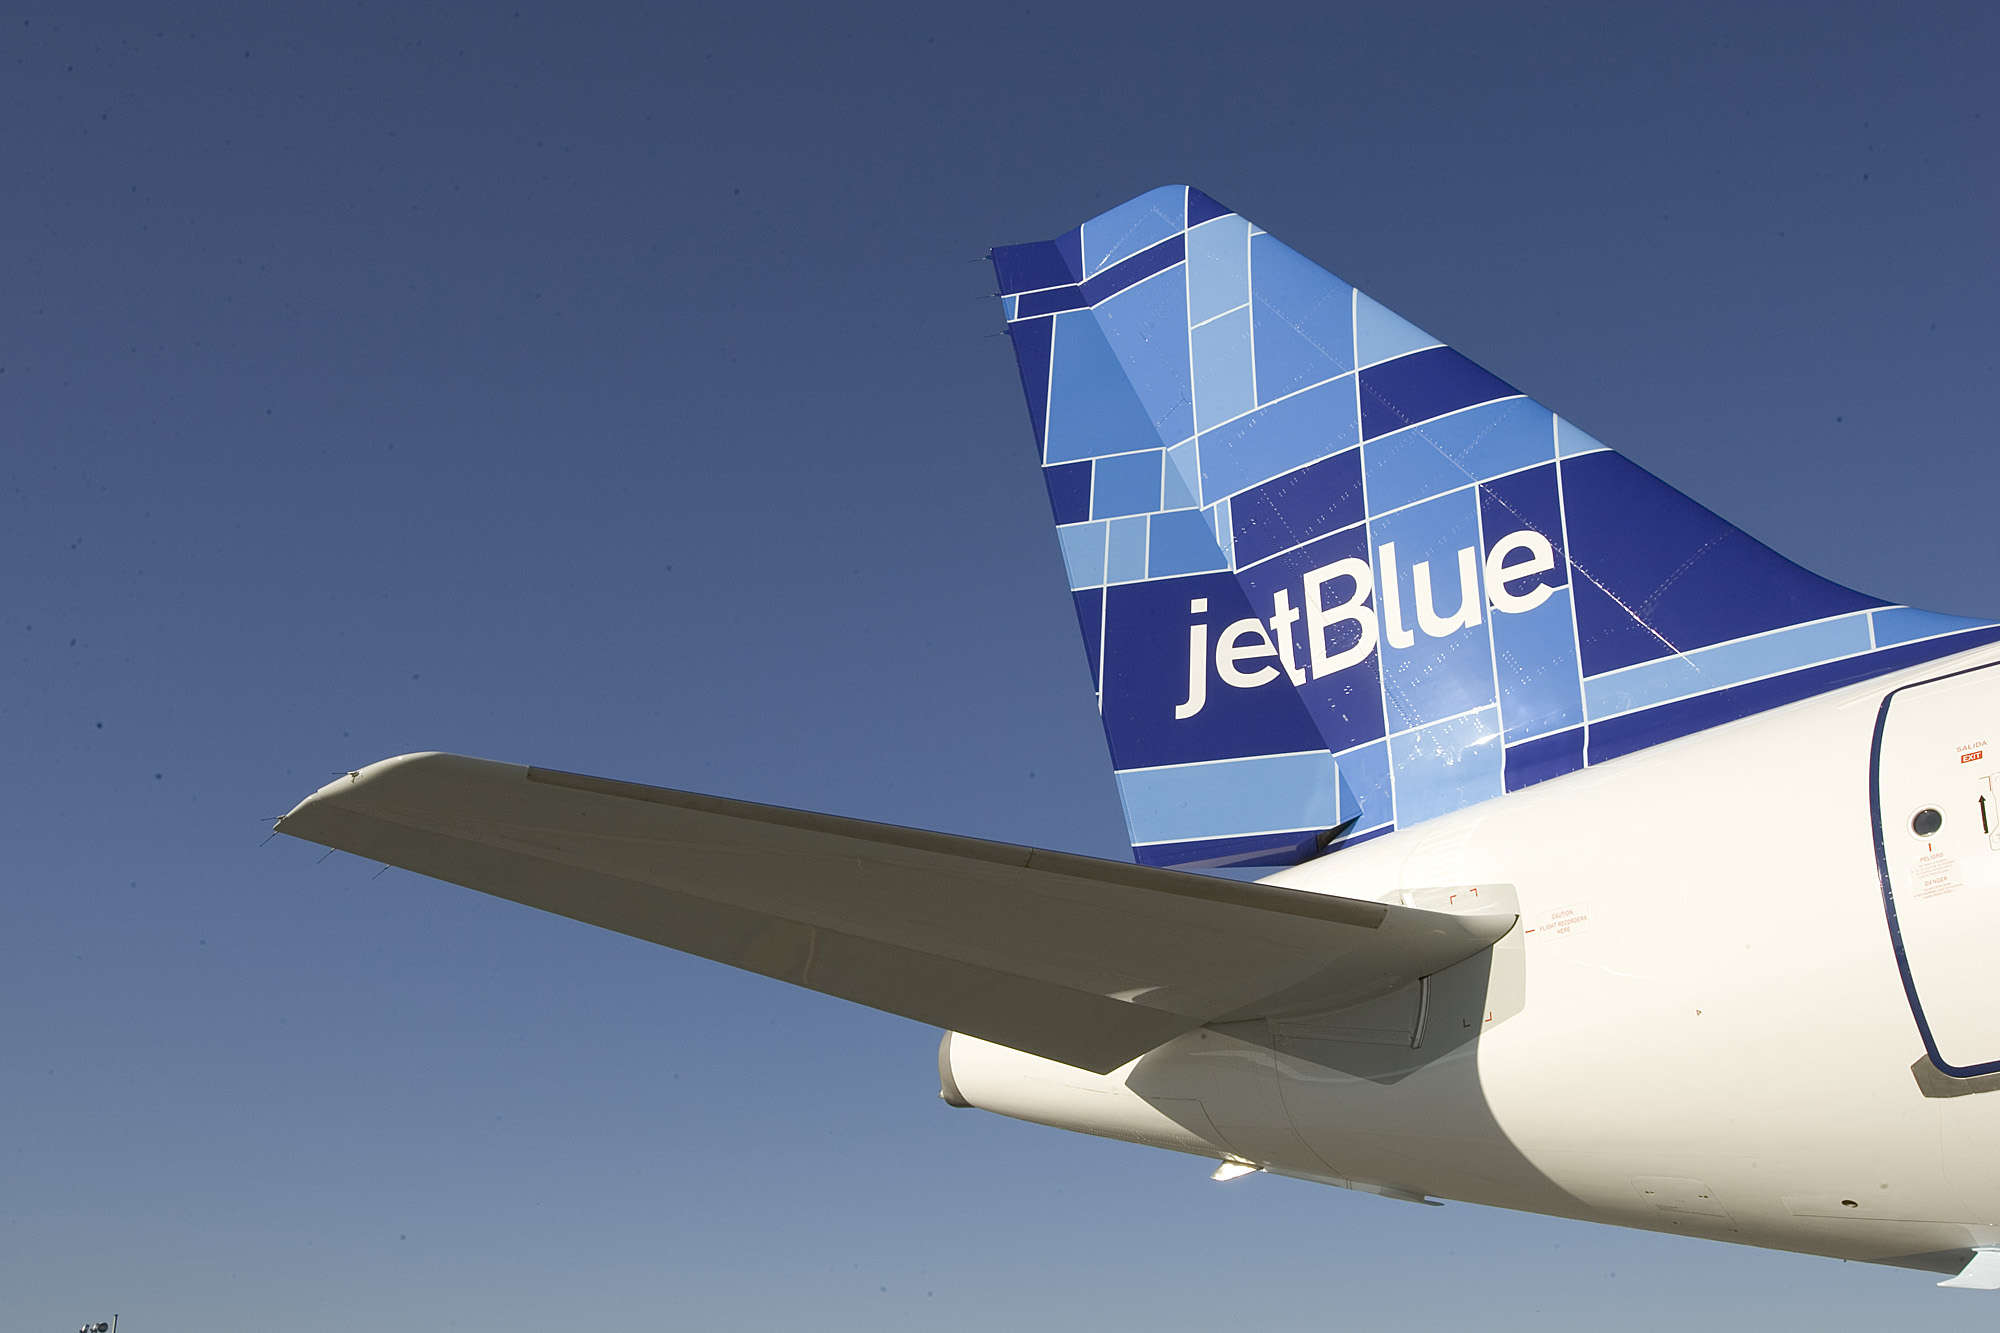 JETBLUE TURNS FIVE;  TAKES DELIVERY OF 71ST AIRBUS A320 New York, NY (February 11, 2005) Ð JetBlue Airways [NASDAQ: JBLU] today turned five.  The airline commenced service at New YorkÕs John F. Kennedy International Airport on February 11, 2000, with a ceremonial flight to Buffalo, NY, and back before taking its first commercial flight to Fort Lauderdale, FL, later that day.  Five years later, JetBlue is the largest airline at JFK and ranked as a ÒmajorÓ airline by the US Department of Transportation, having achieved annual revenues of more than a billion dollars.  To mark the occasion, David Neeleman, JetBlueÕs Chairman and CEO, and Dave Barger, President and COO, hosted an event for JetBlue crewmembers and customers to greet the arrival of the airlineÕs 71st Airbus A320 aircraft, debuting the fleetÕs seventh tail fin design, Mosaic.  Earlier in the day, the airline gave away 500 free tickets throughout New York CityÕs five boroughs to support the charity City Harvest.  Ticket seekers had to dress as their favorite JetBlue destination and bring canned goods for the charity.